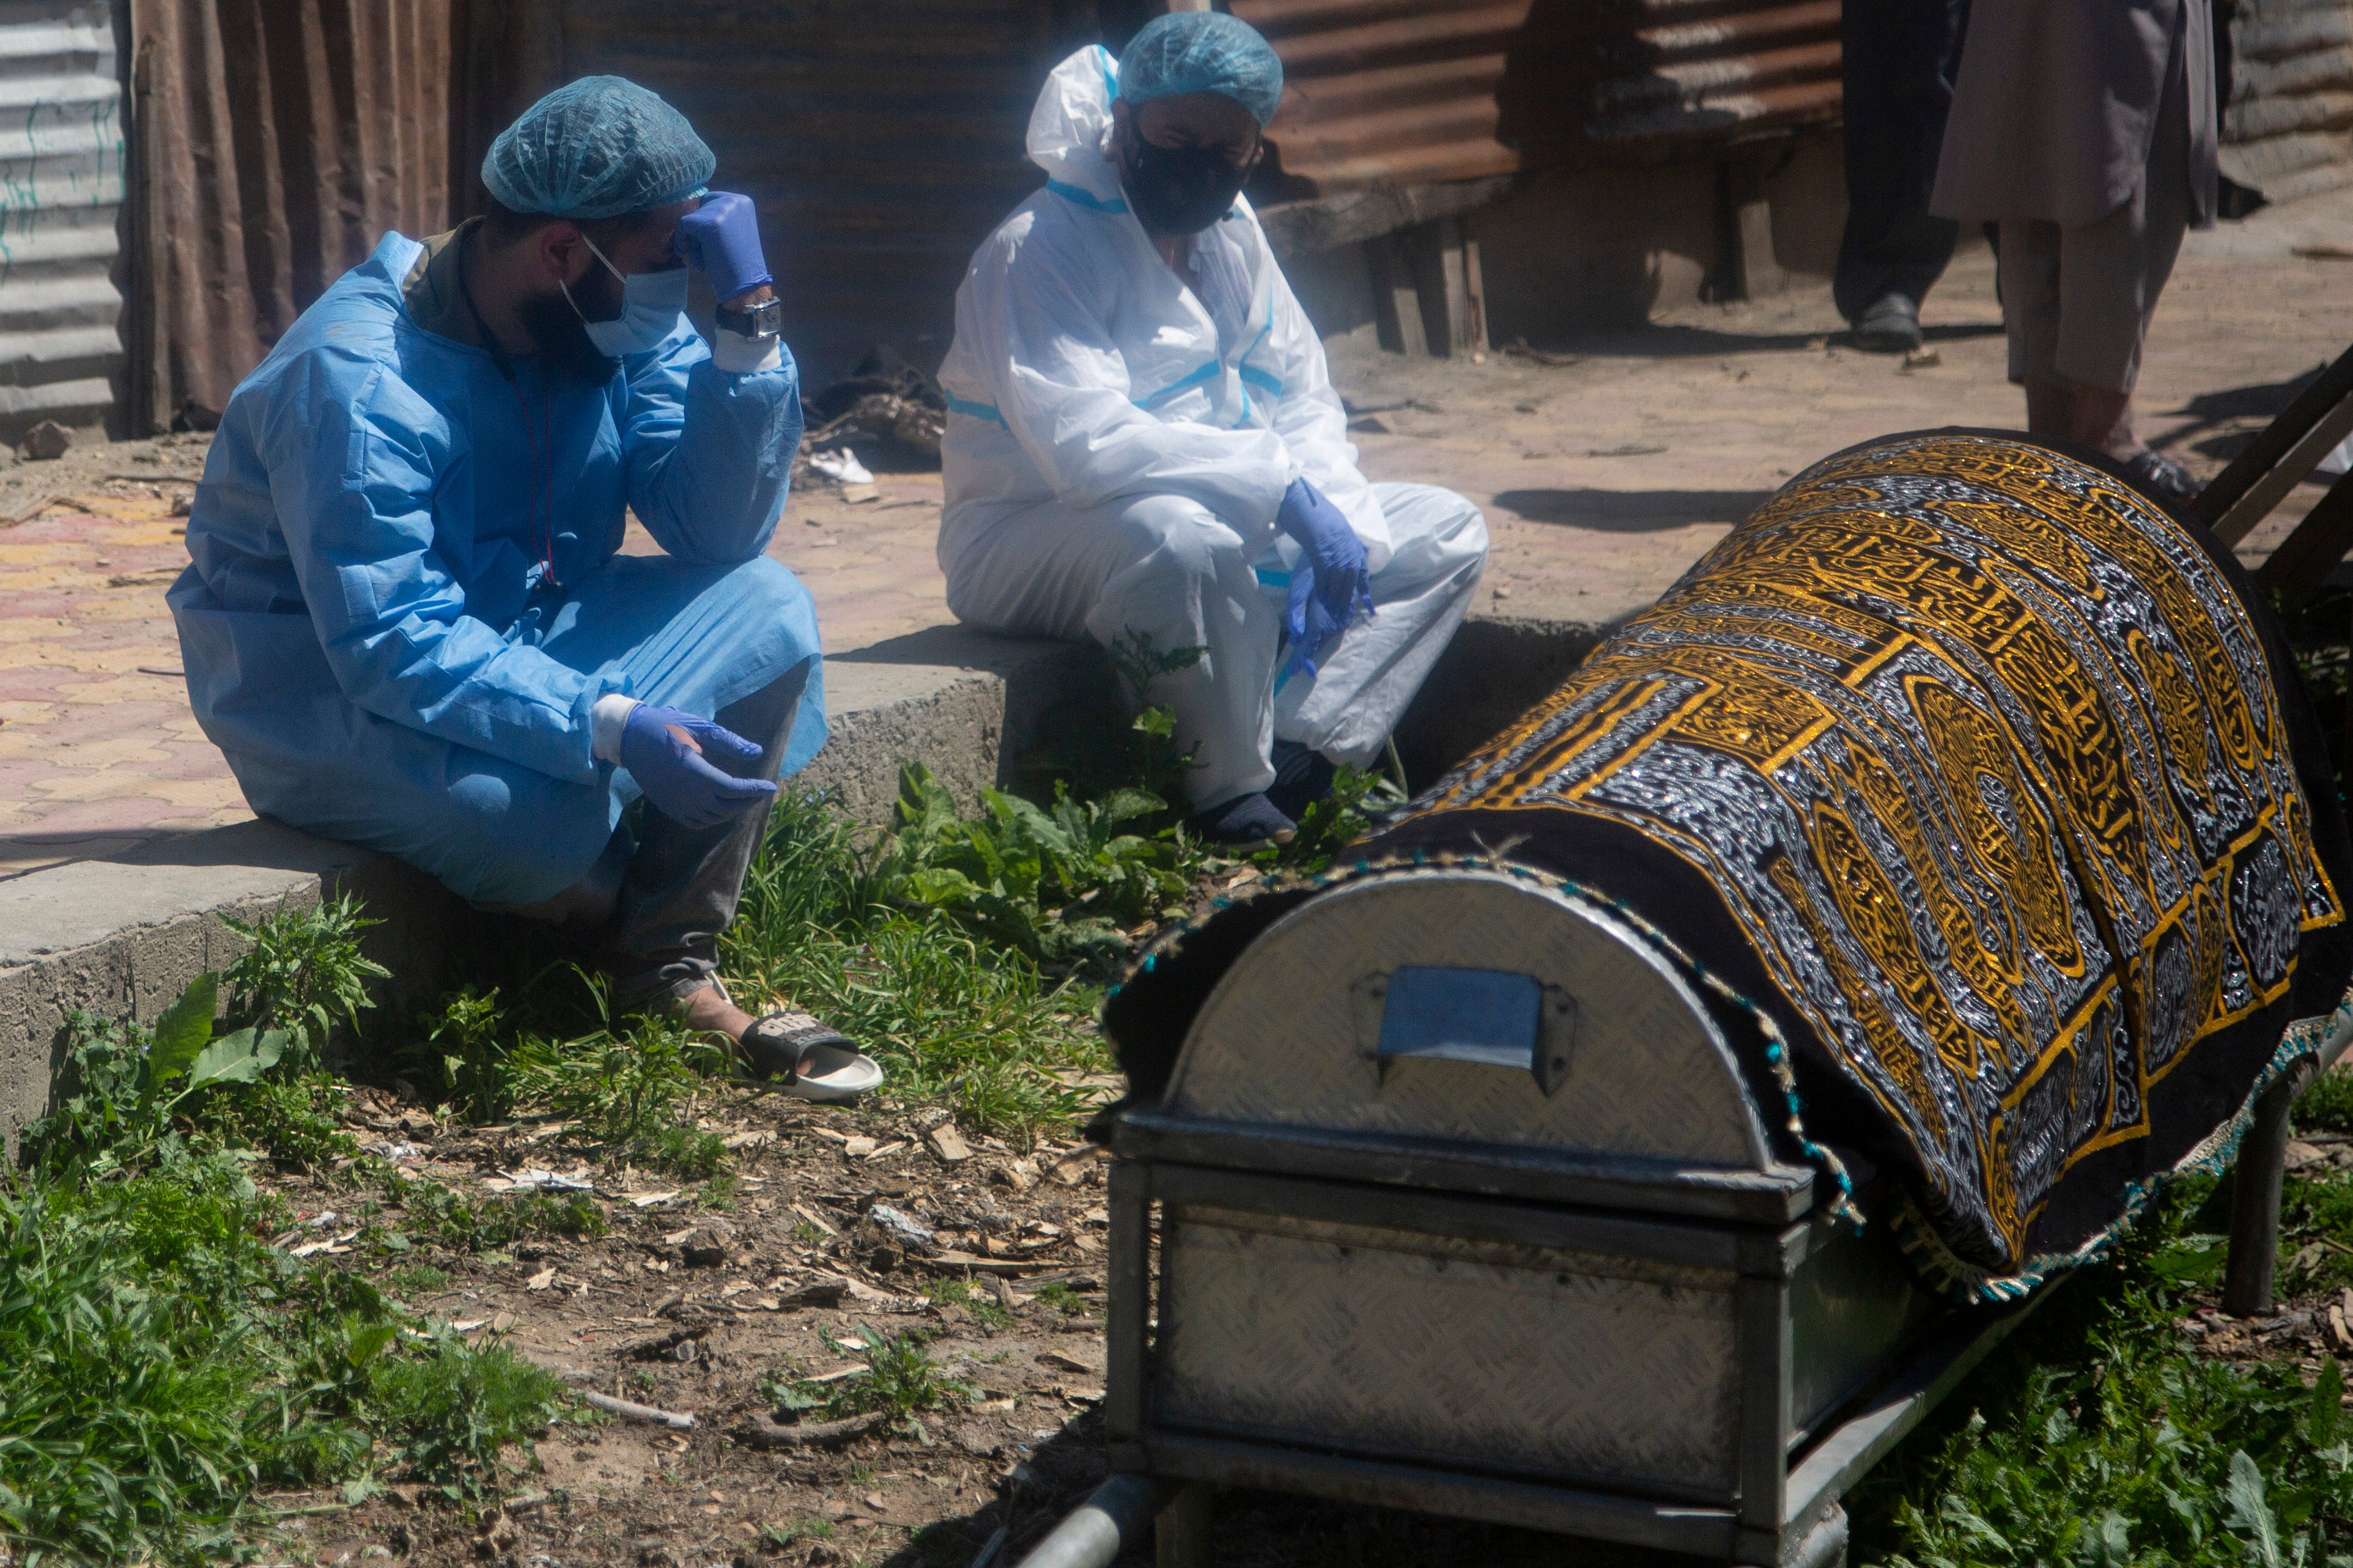 Virus 'swallowing' people in India; crematoriums overwhelmed 1